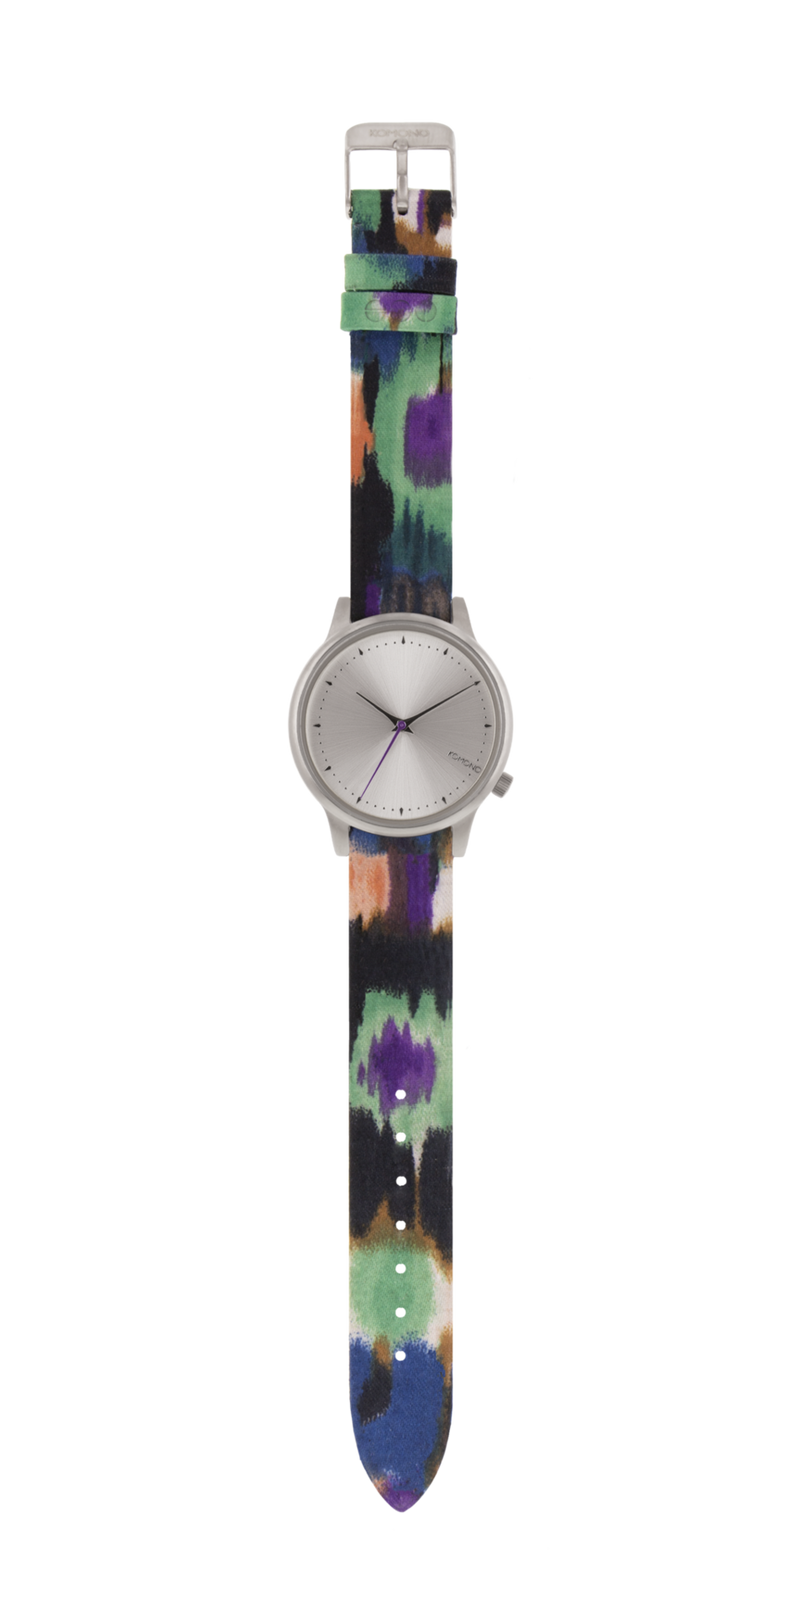 Get the latest Komono Estelle Aquarelle Watch  online at Roar Streetwear NZ. Free deliveries on orders over $100. Stores at Whitianga, Whangamata & Waihi Beach.